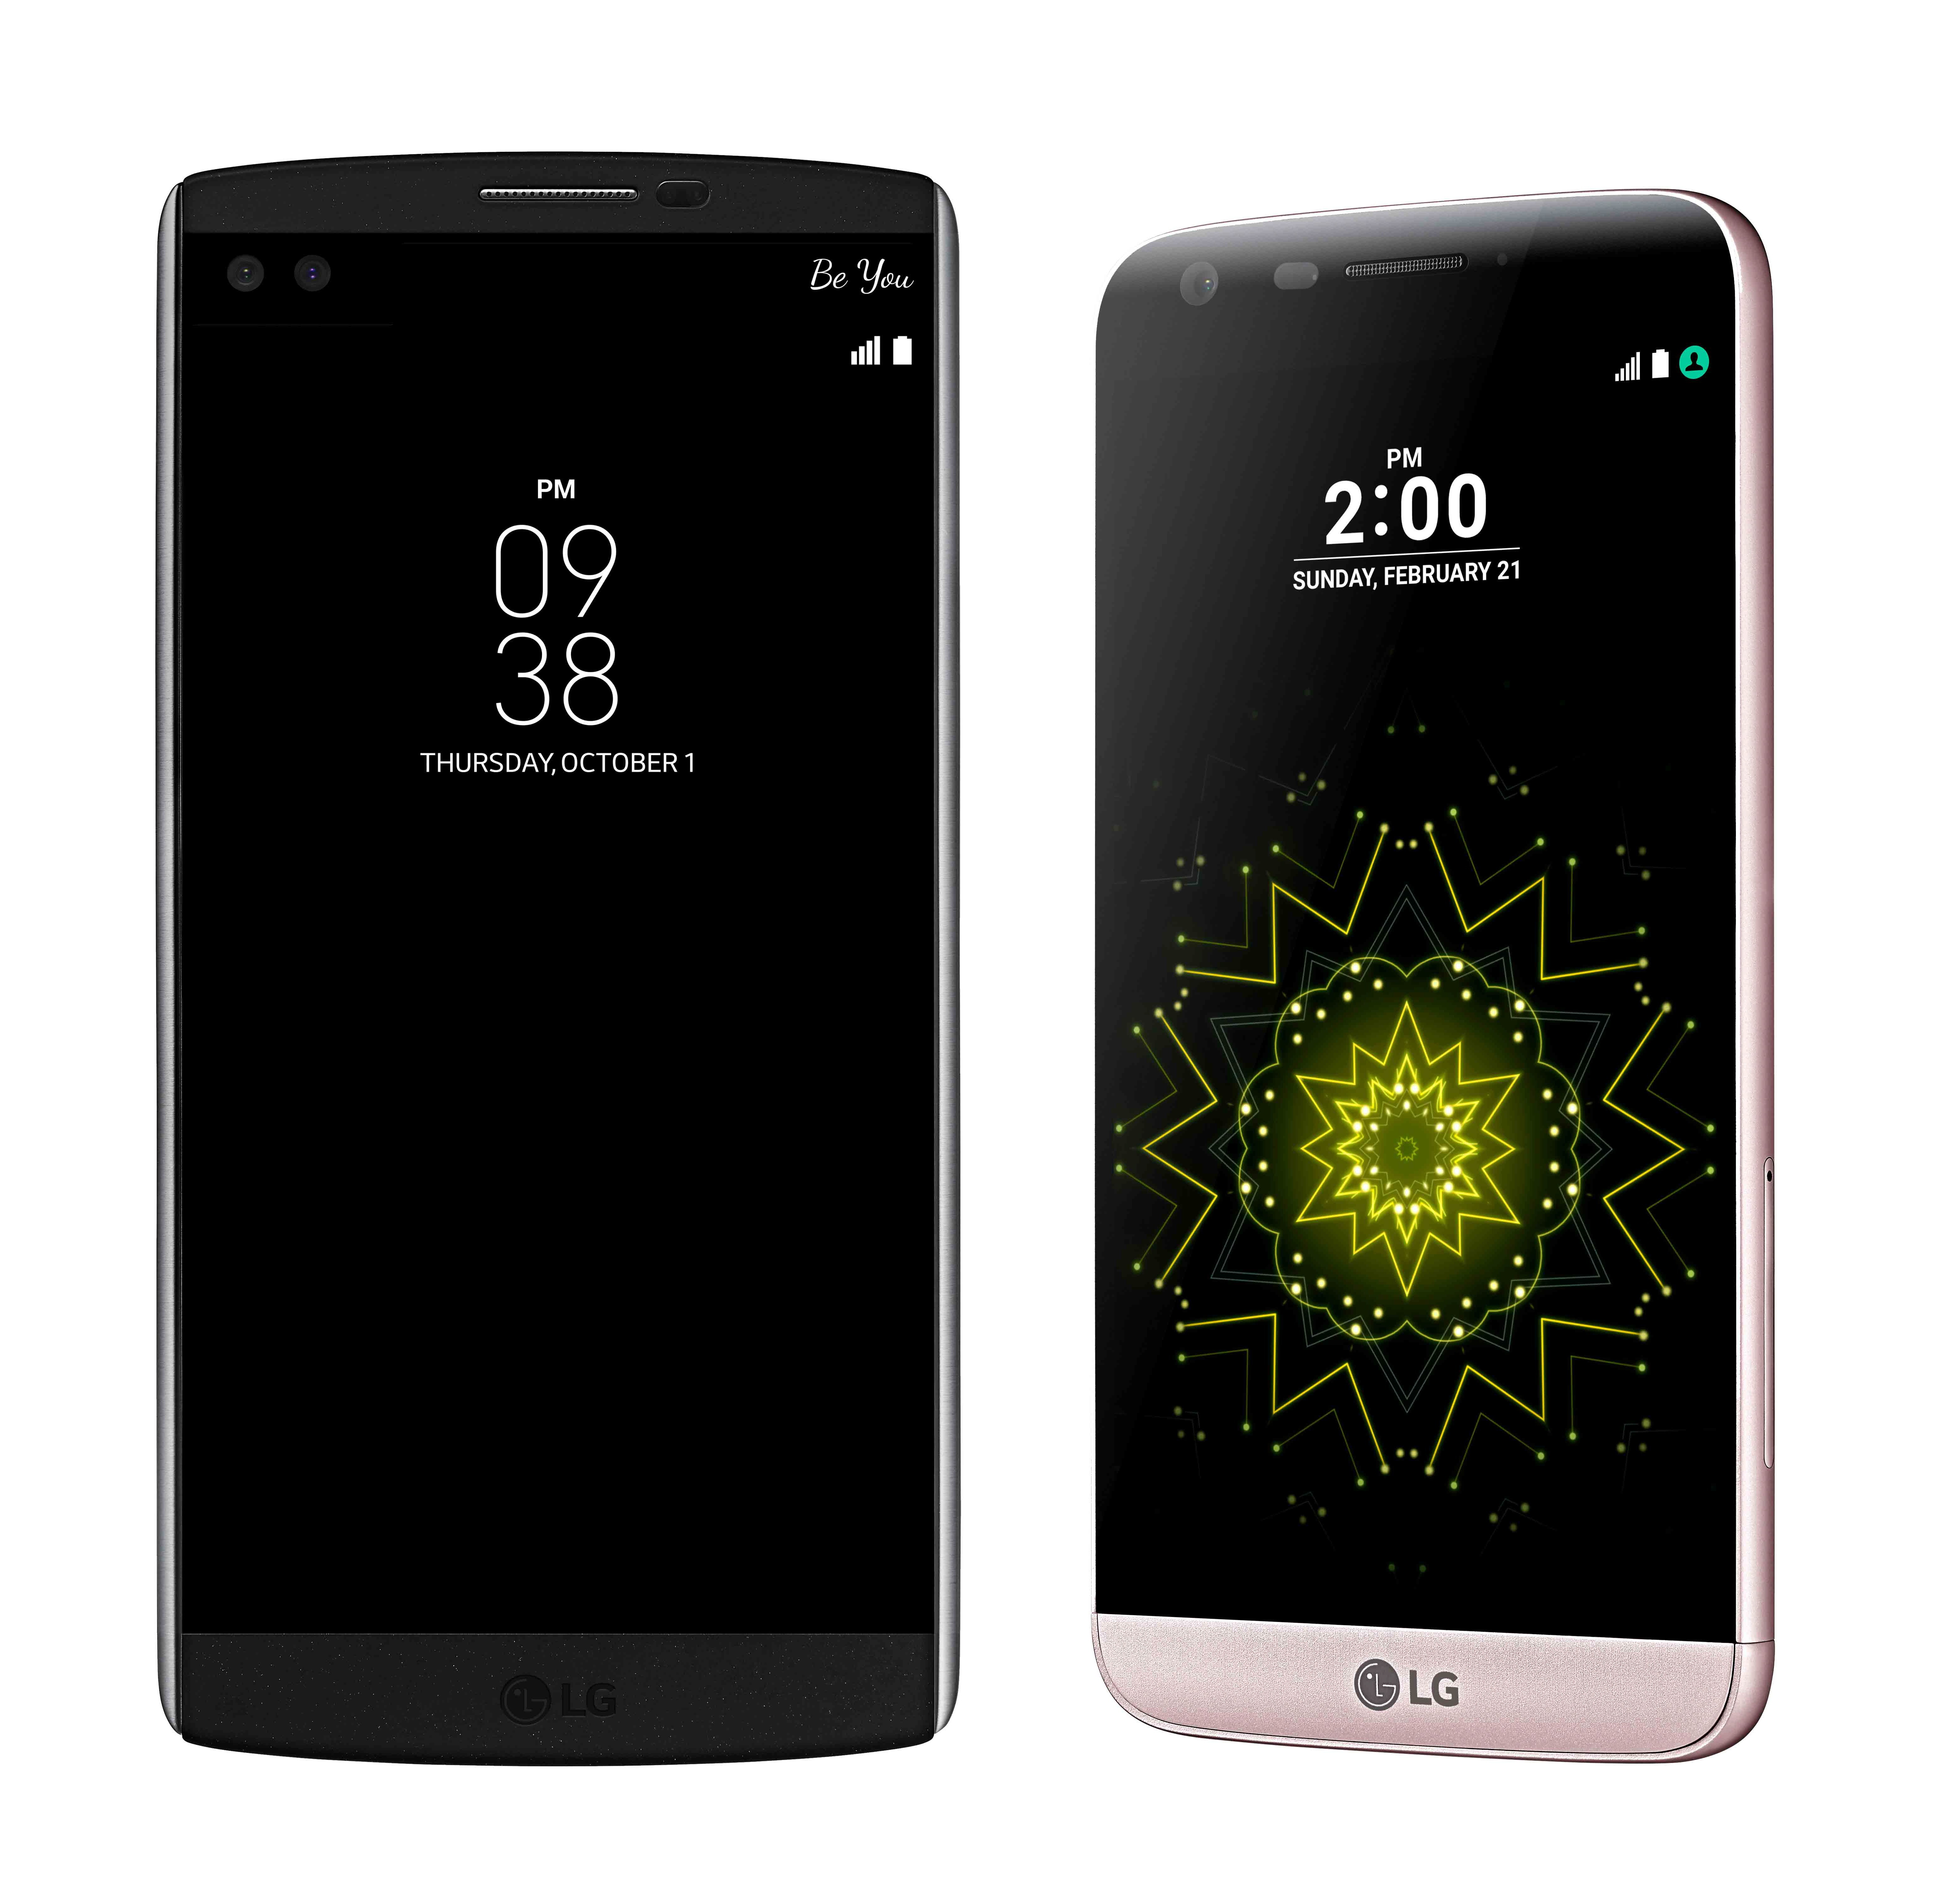 The front view of the LG V10 in Space Black and the LG G5 in Pink